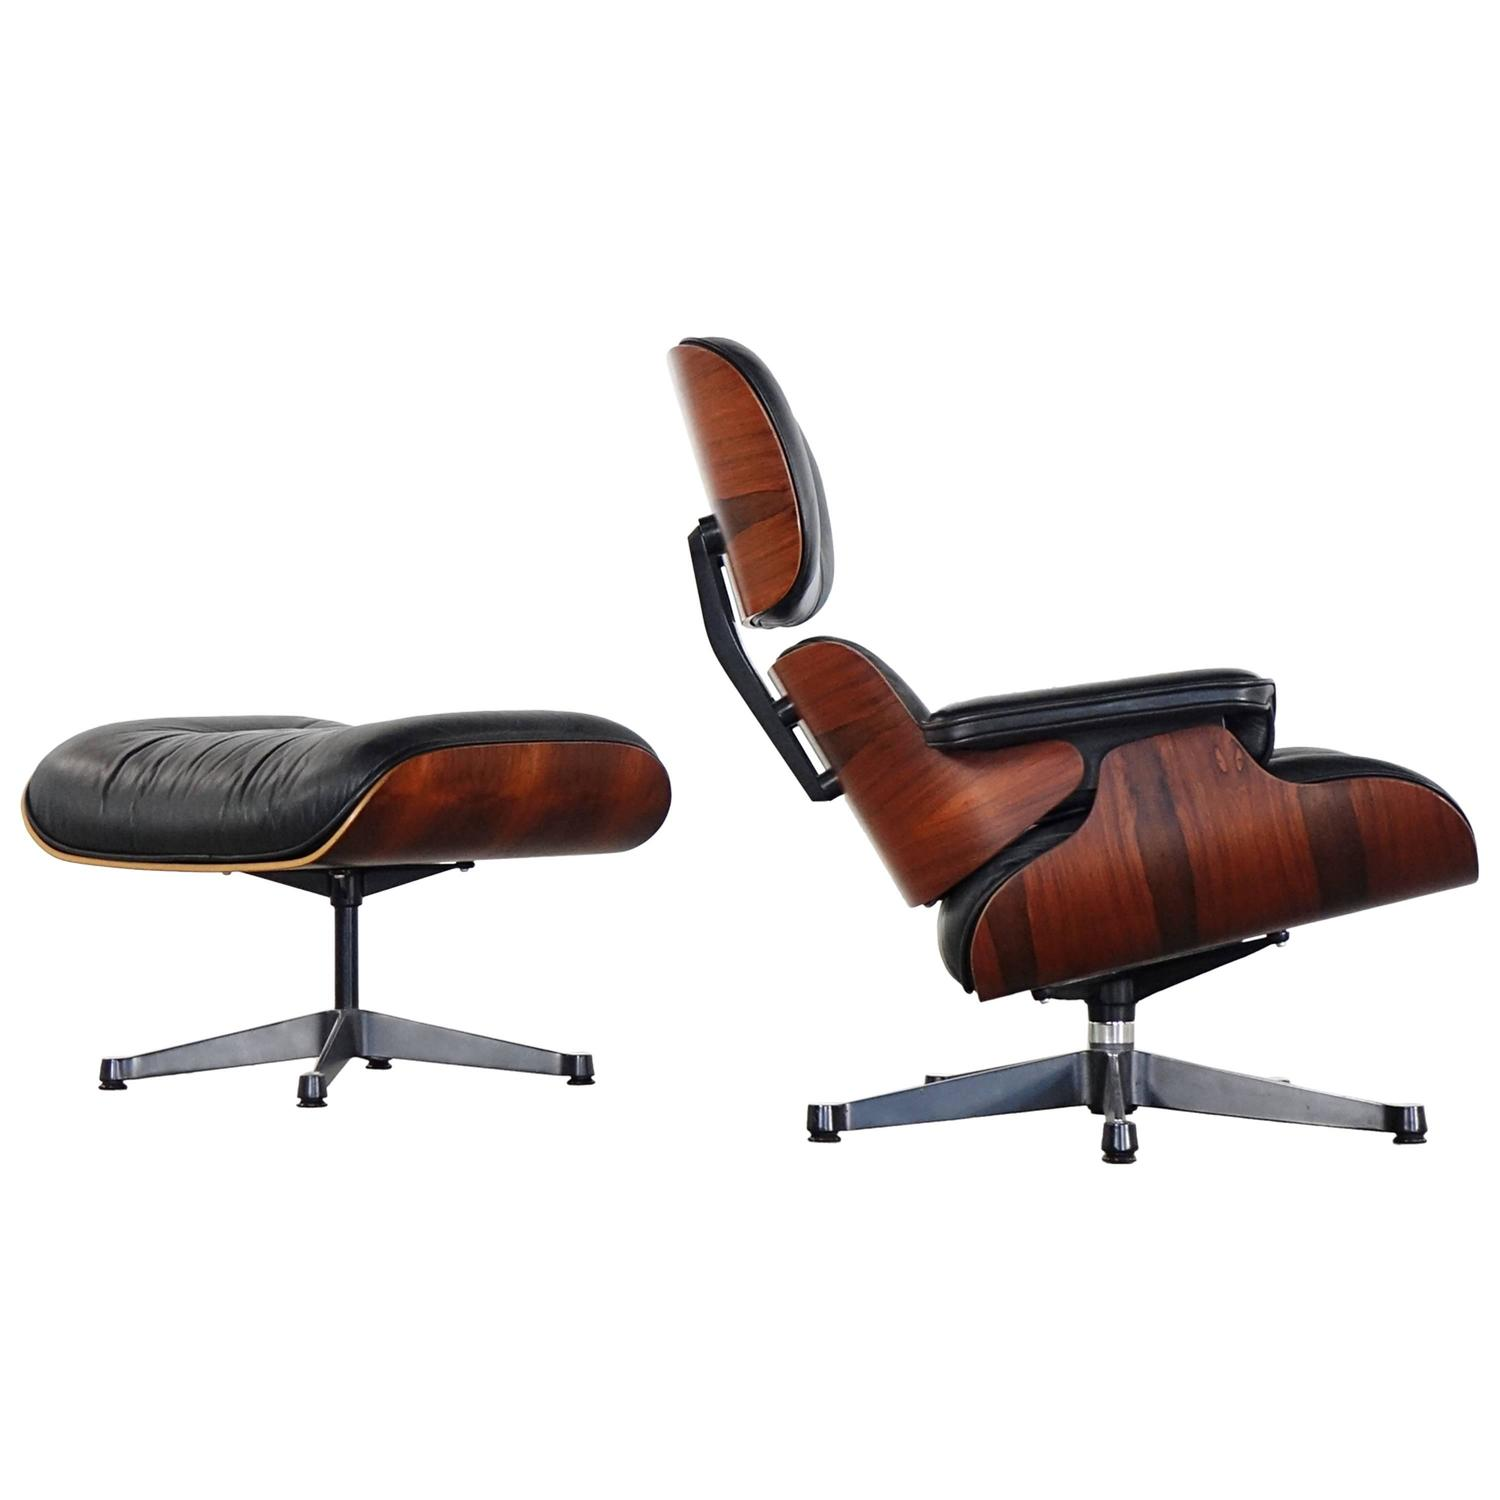 Vitra charles eames lounge chair and ottoman in rio for Eames chair vitra replica